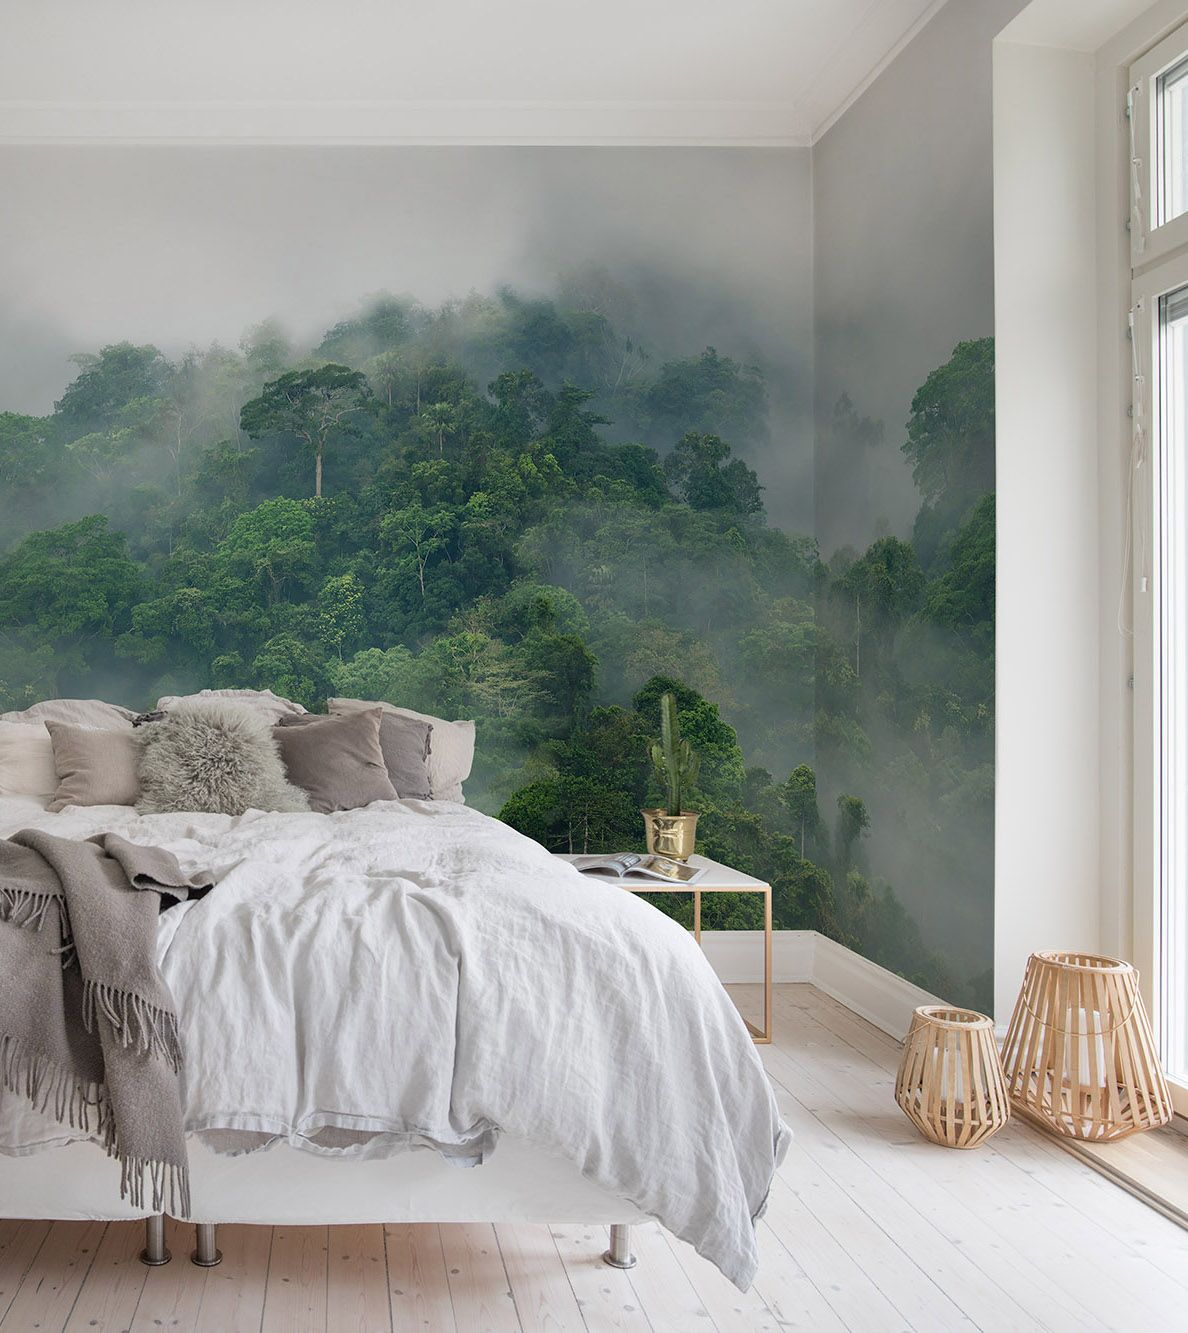 Fototapete Schlafzimmer Sonnenuntergang Misty Forest In 2019 Urban Jungle Tapeten Und Inspiration